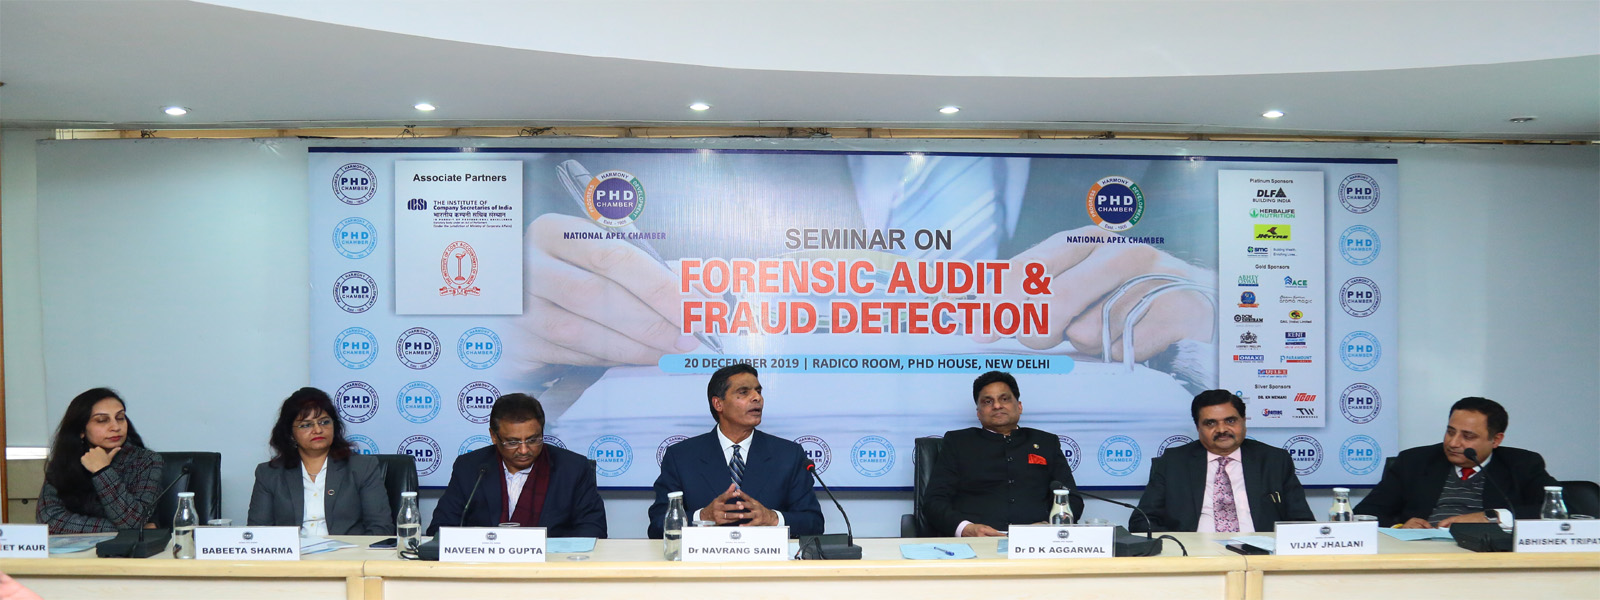 Seminar on Forensic Audit and Fraud Detection